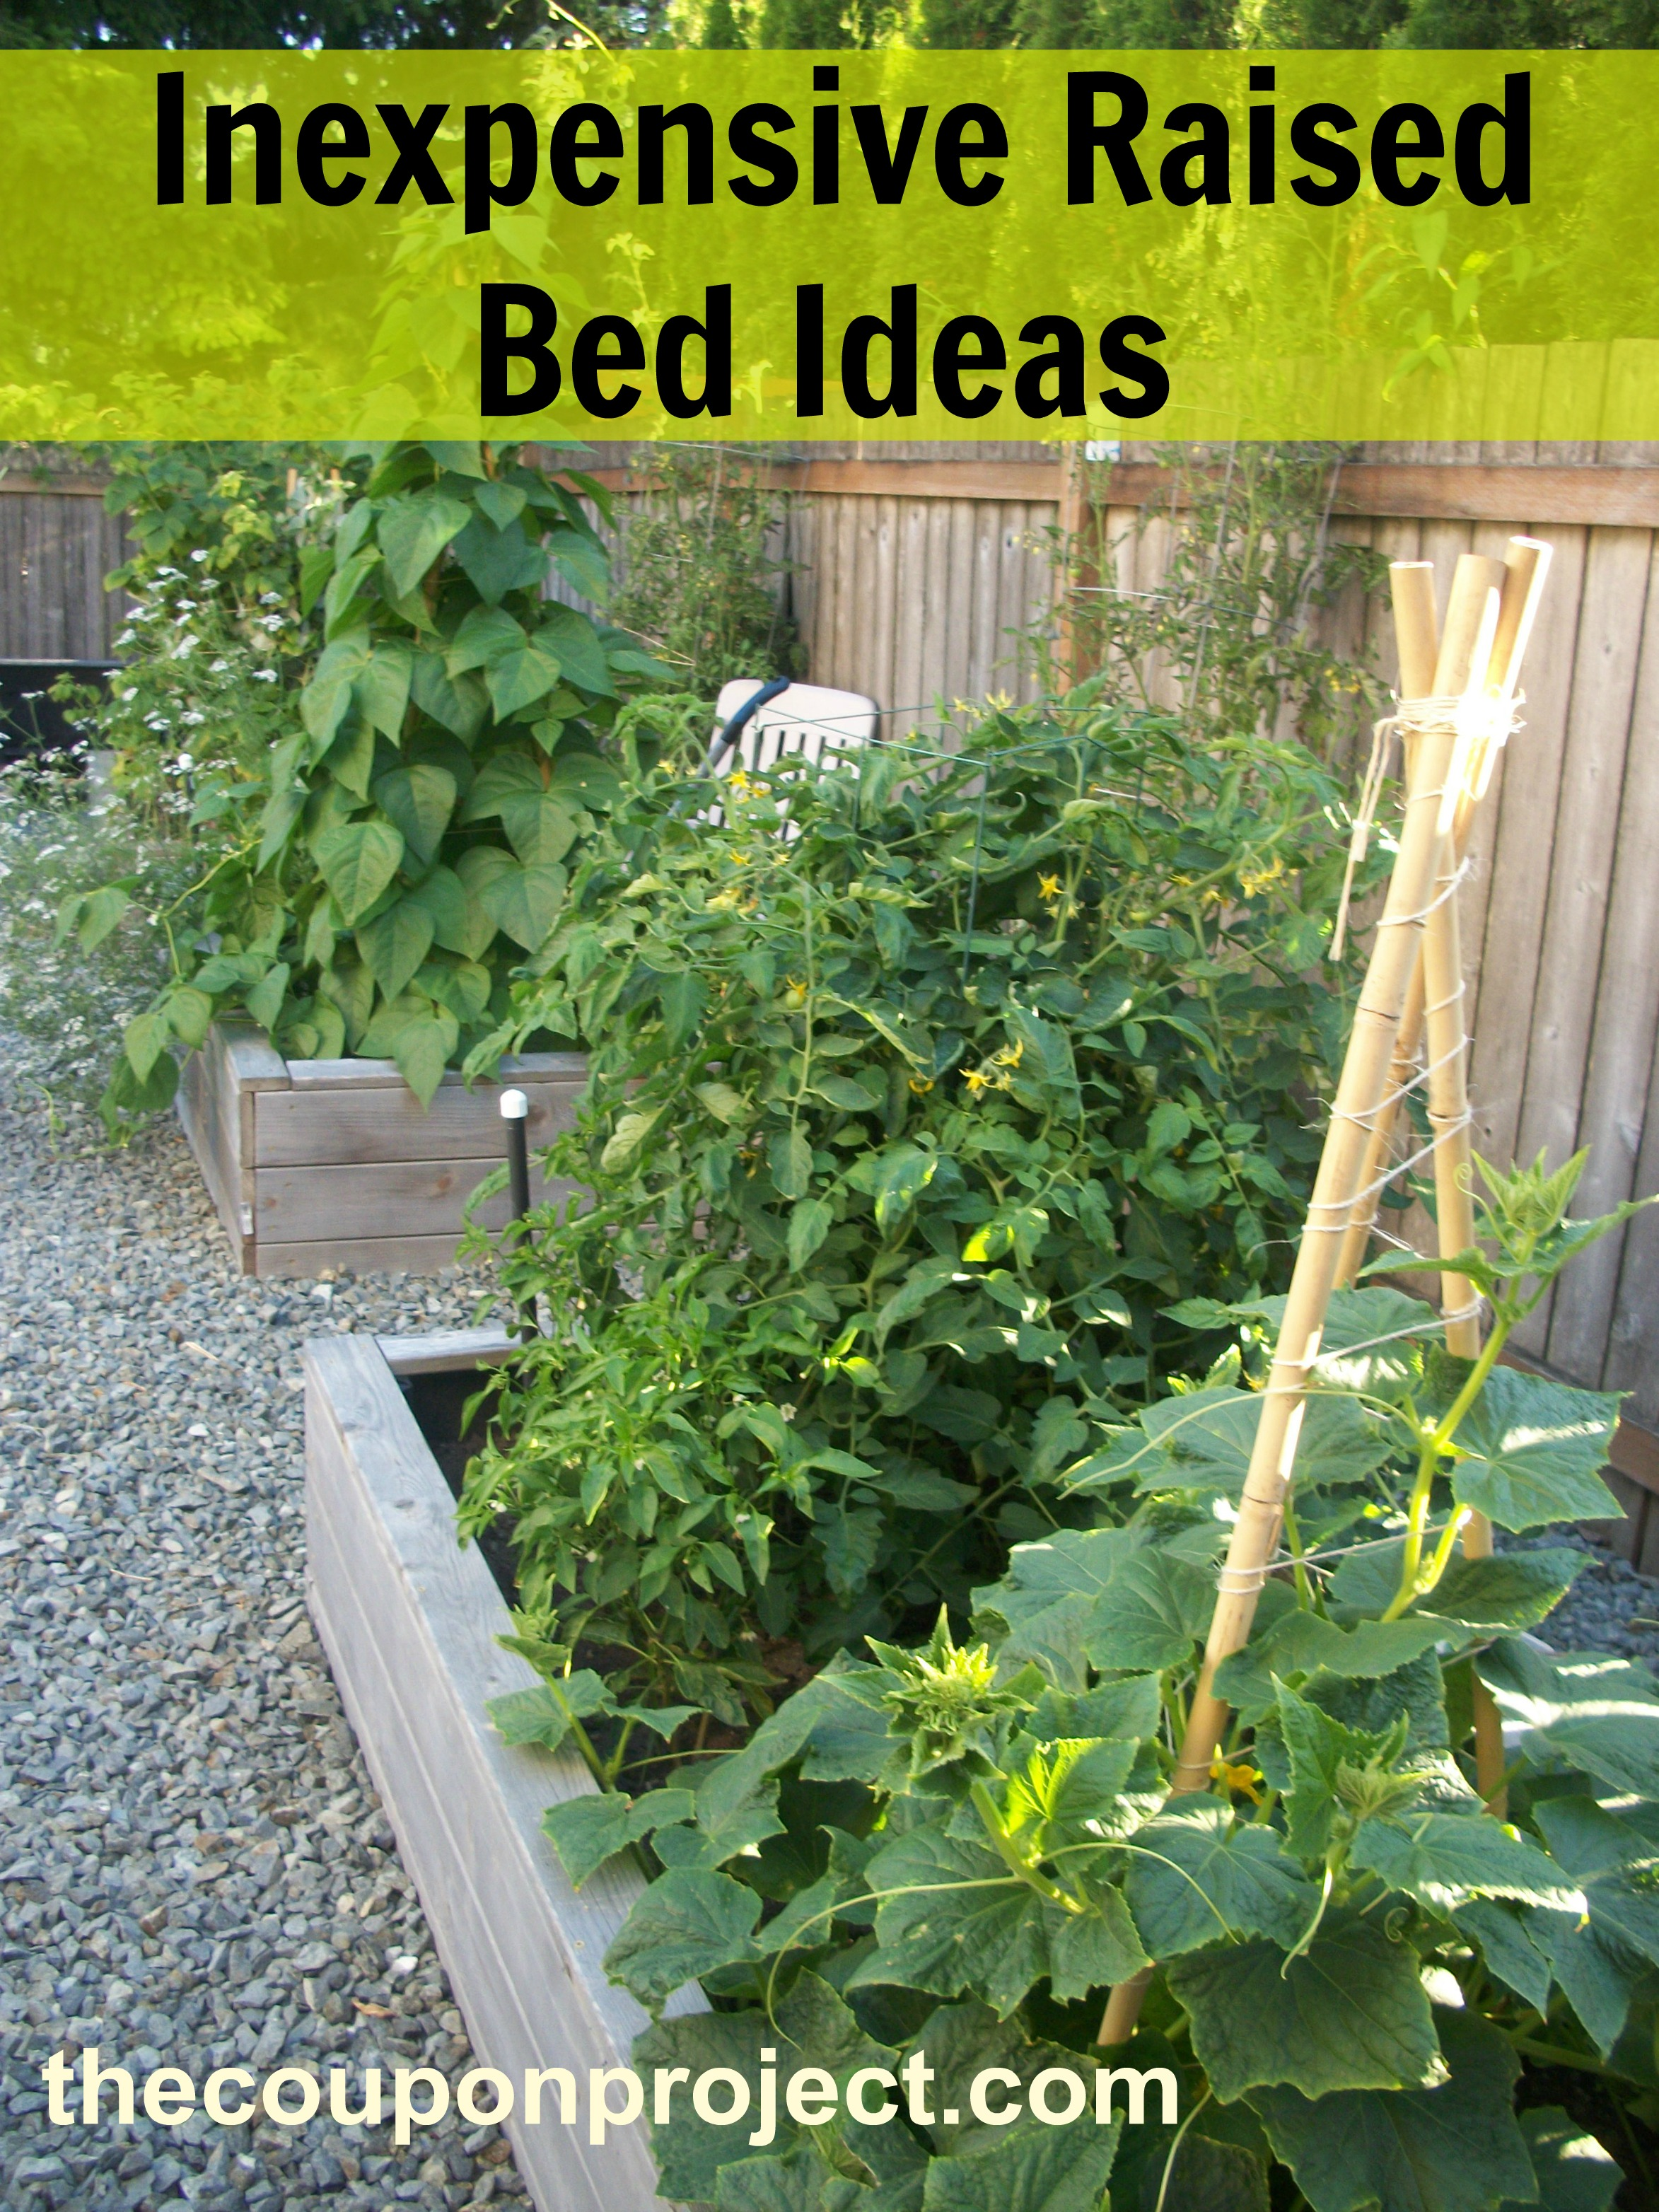 Admirable How To Make Inexpensive Raised Beds Four Different Frugal Four Inexpensive Raised Bed Ideas Cinder Block Raised Bed Leaching Concrete Block Raised Bed Ideas houzz-02 Cinder Block Raised Bed